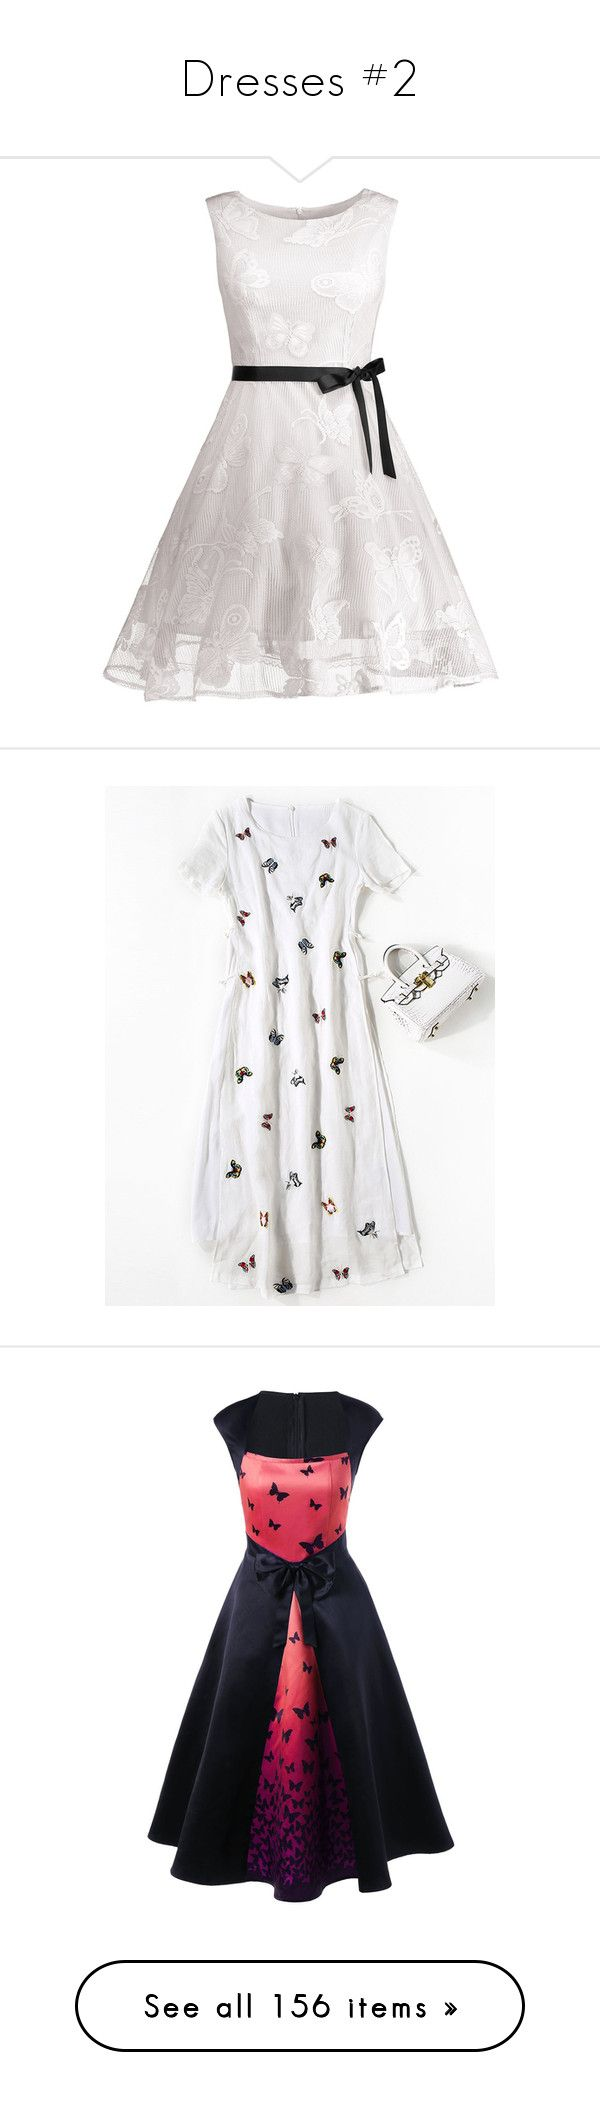 """""""Dresses #2"""" by rubygirl645 ❤ liked on Polyvore featuring dresses, short white dresses, formal dresses, white dress, white formal dresses, moth dress, butterfly pattern dress, butterfly print dresses, white day dress and white butterfly dress"""